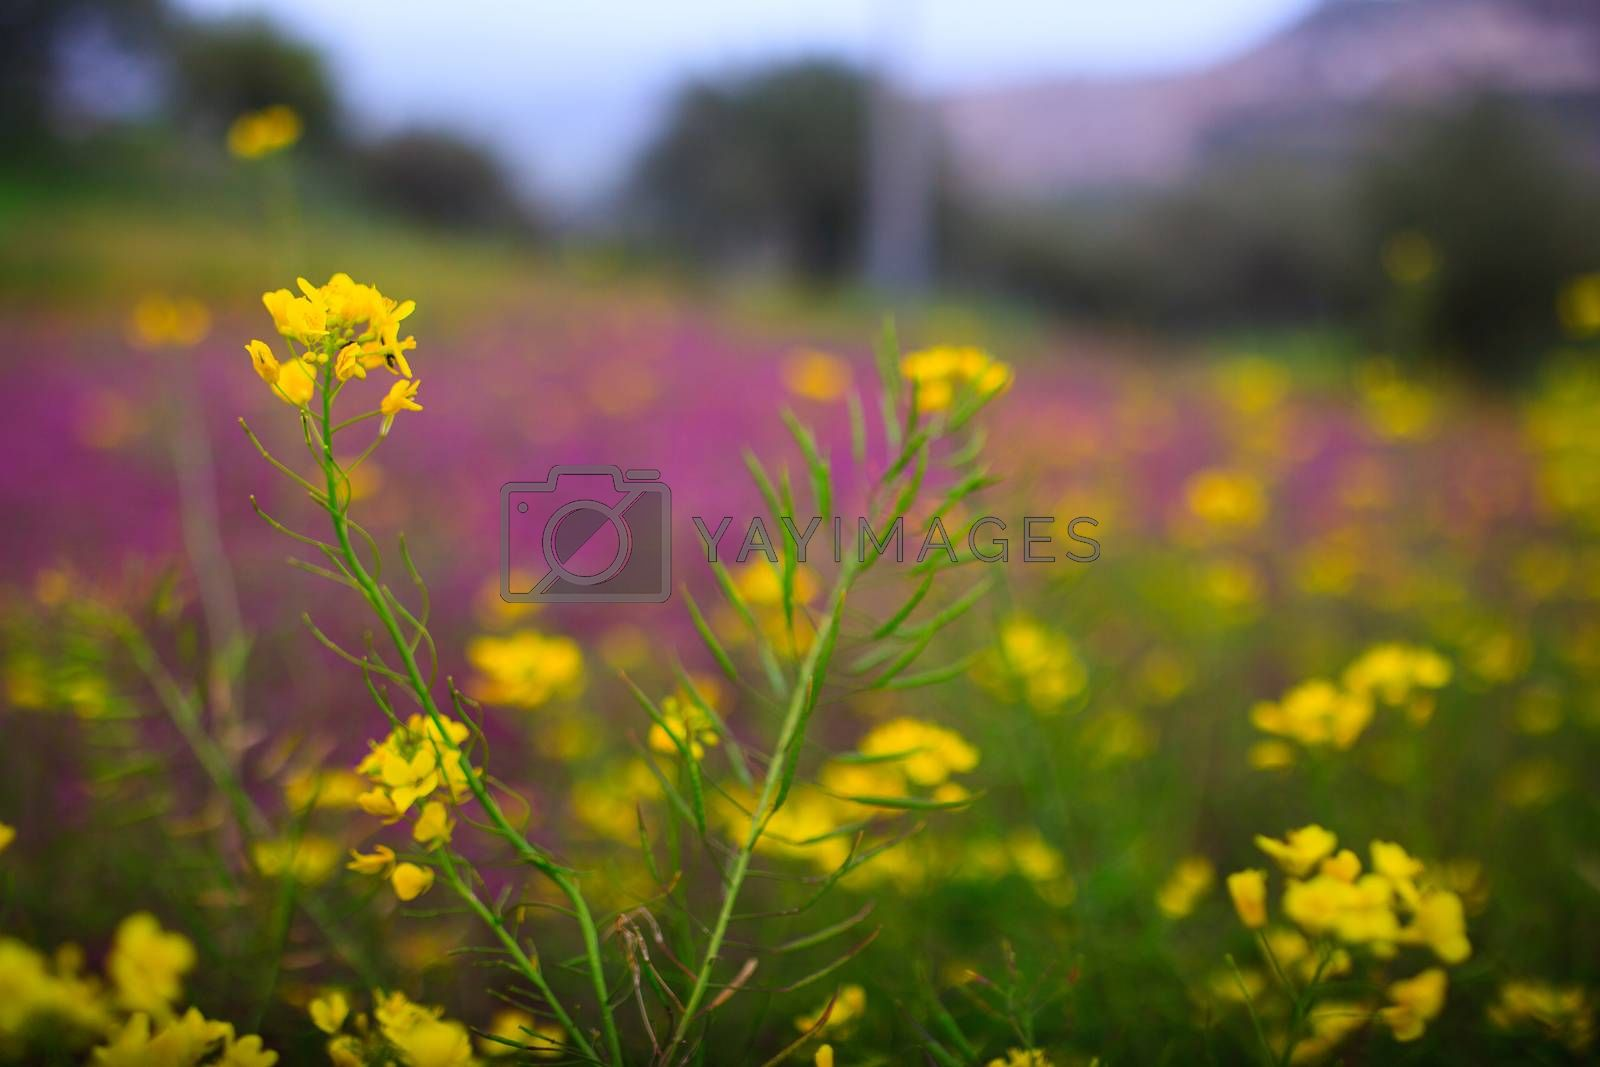 Flowers in the spring, Sicilian countryside